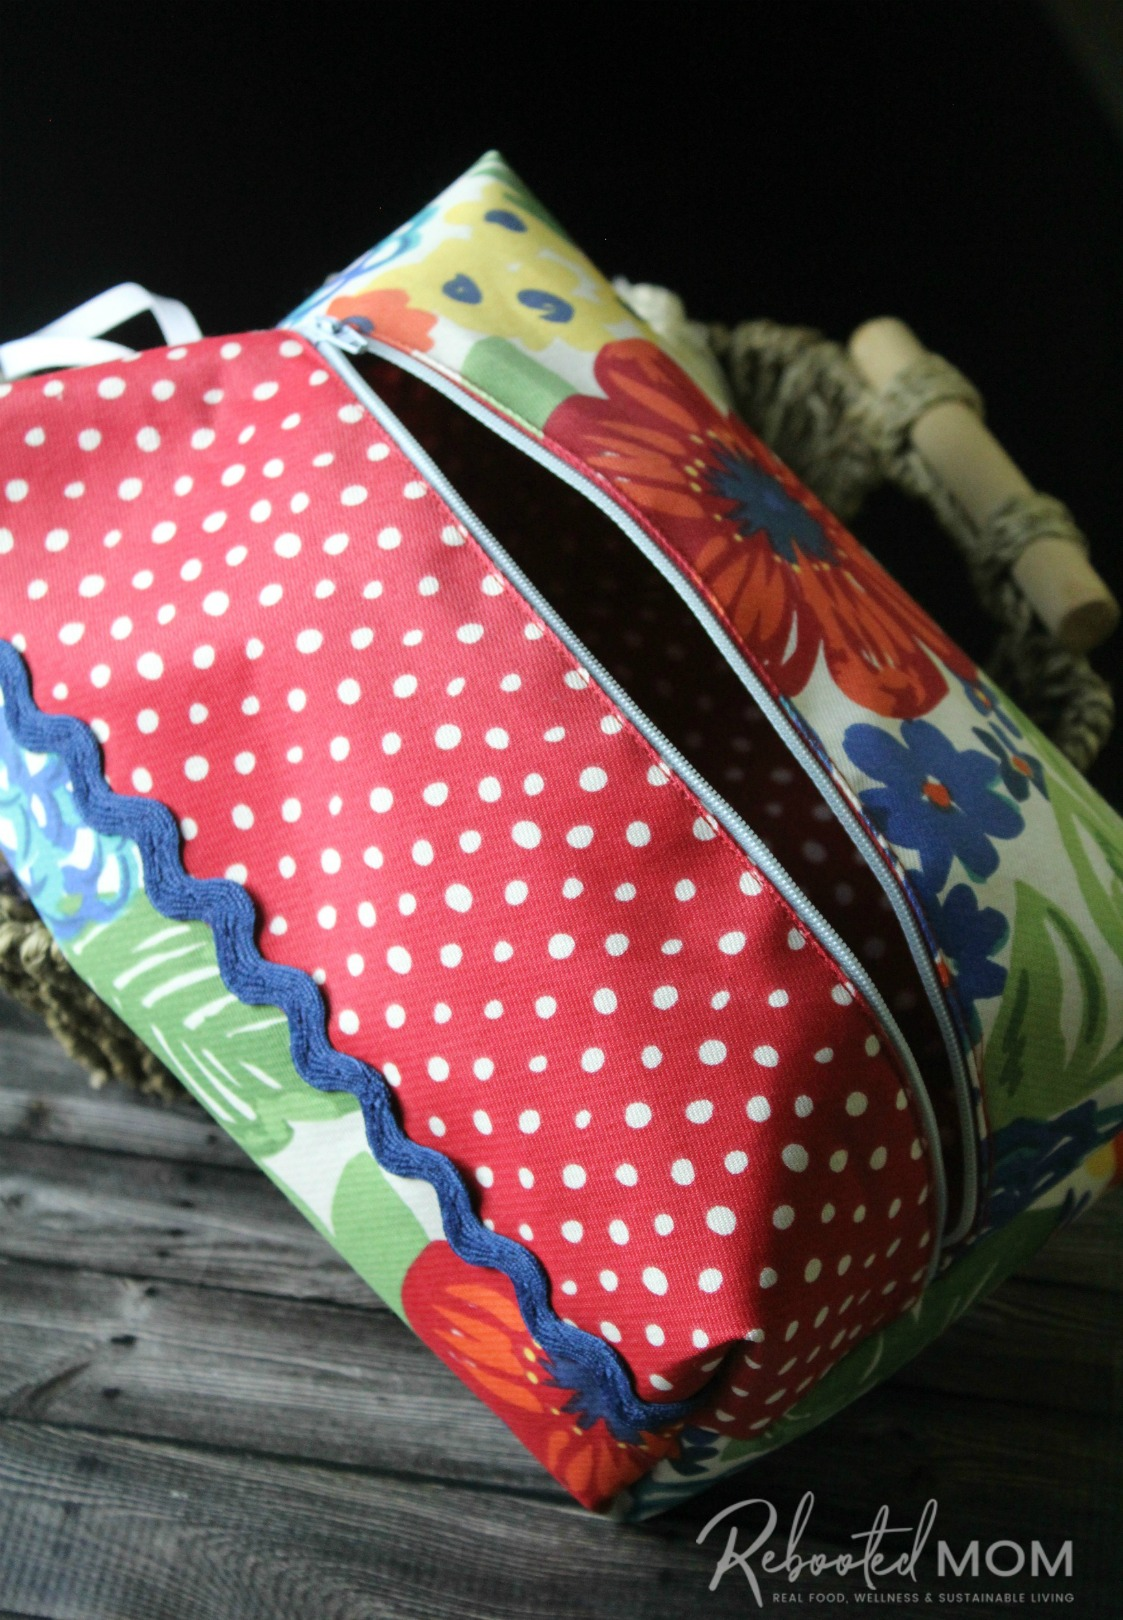 A Pioneer Woman placemat turned into a cosmetic bag